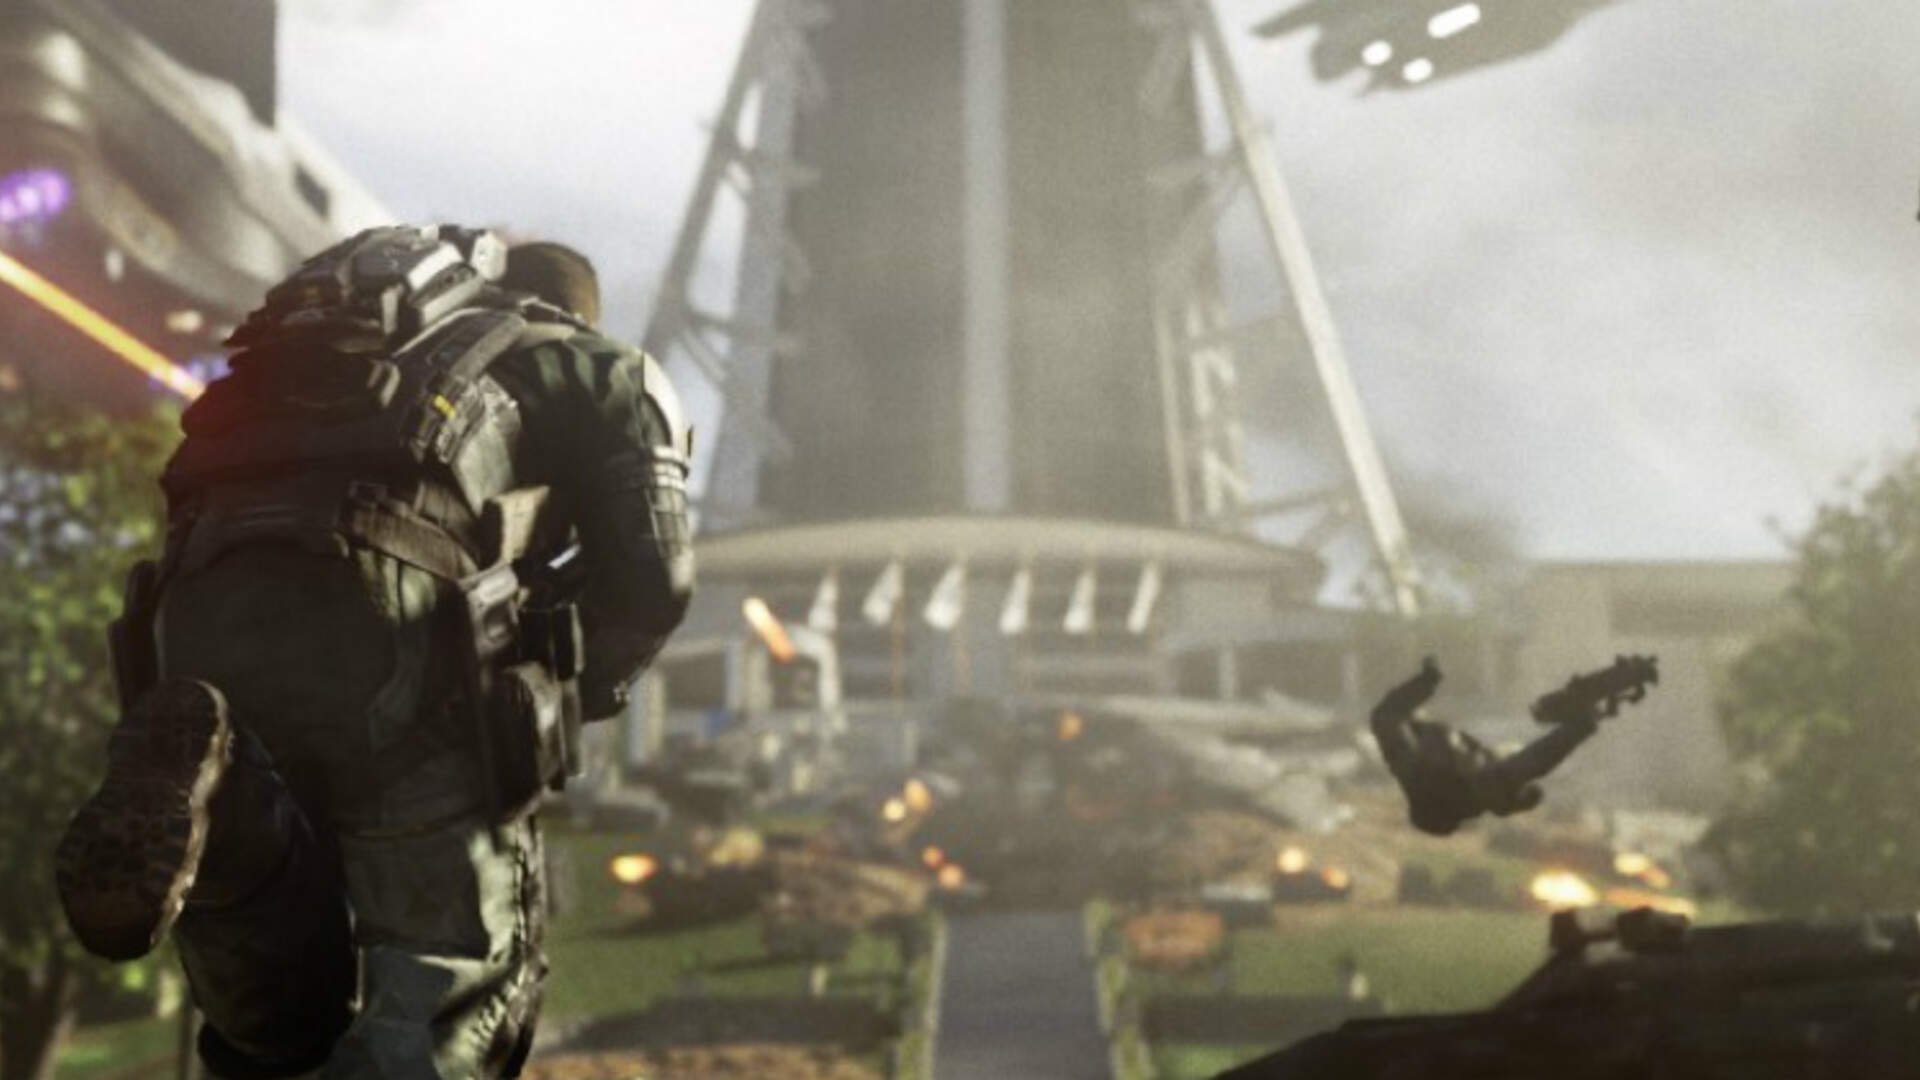 Call of Duty: Infinite Warfare Multiplayer Beta Coming to PS4 on October